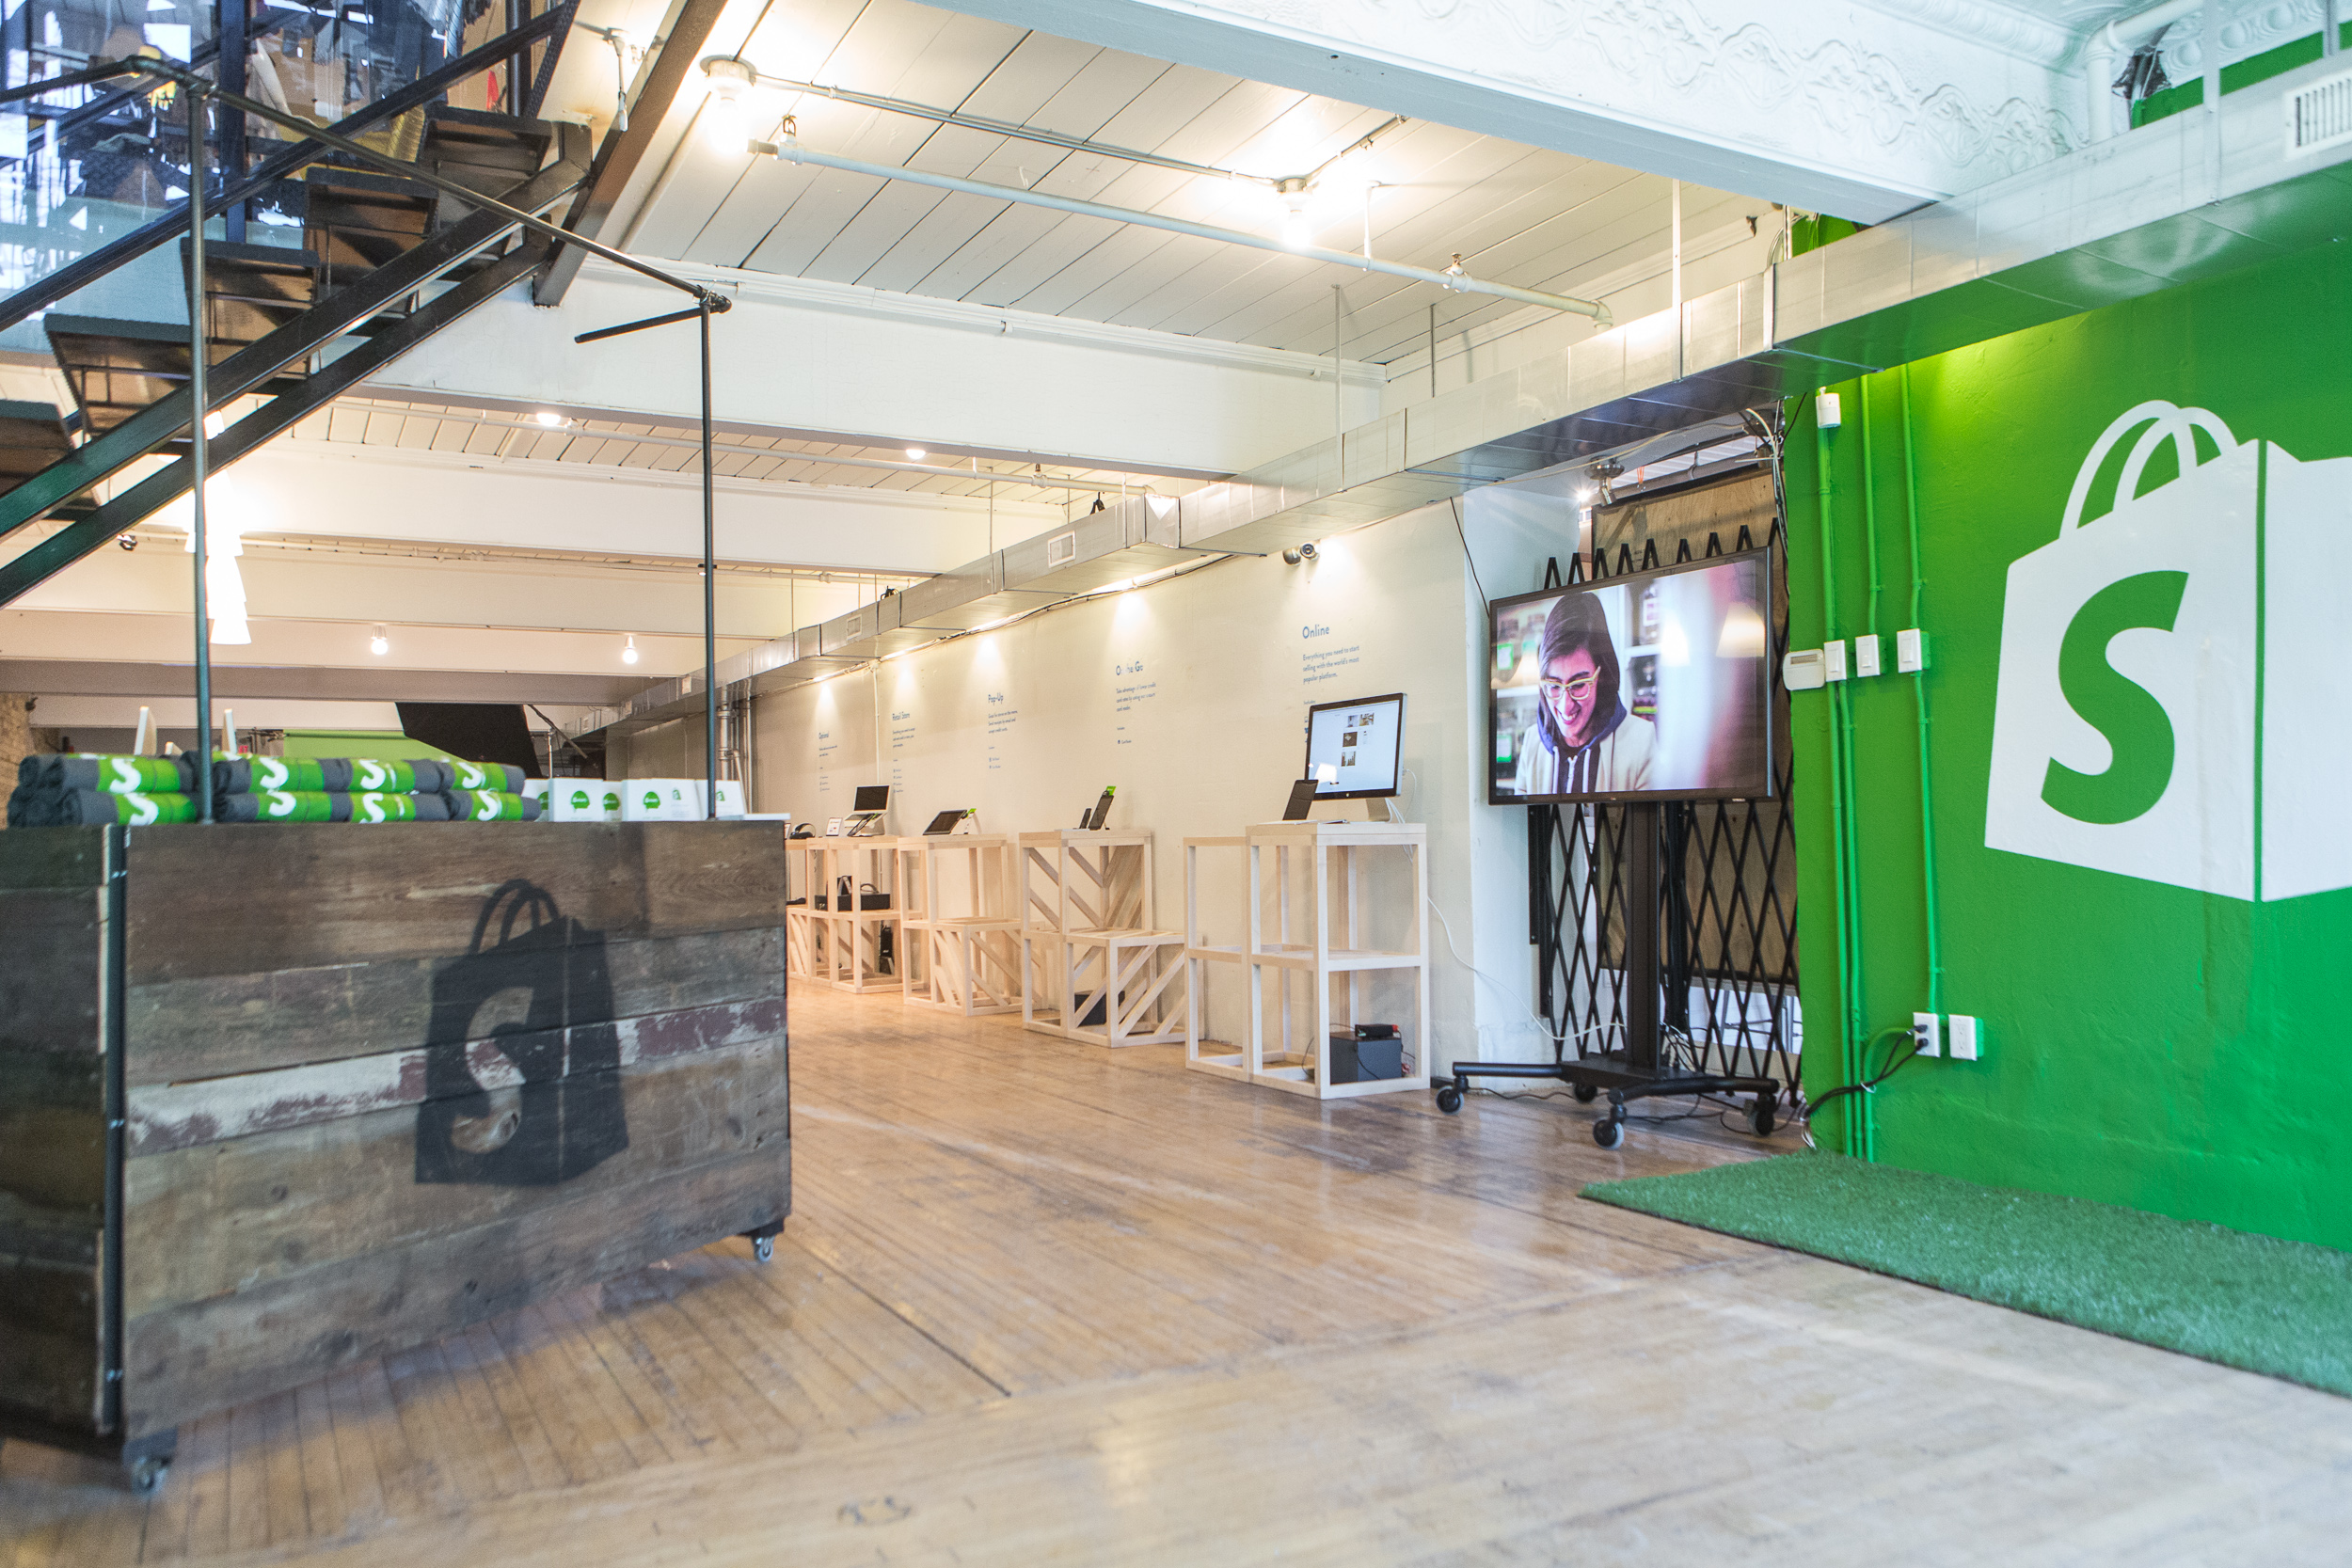 Shopify launches experiential learning program in partnership with Carleton University